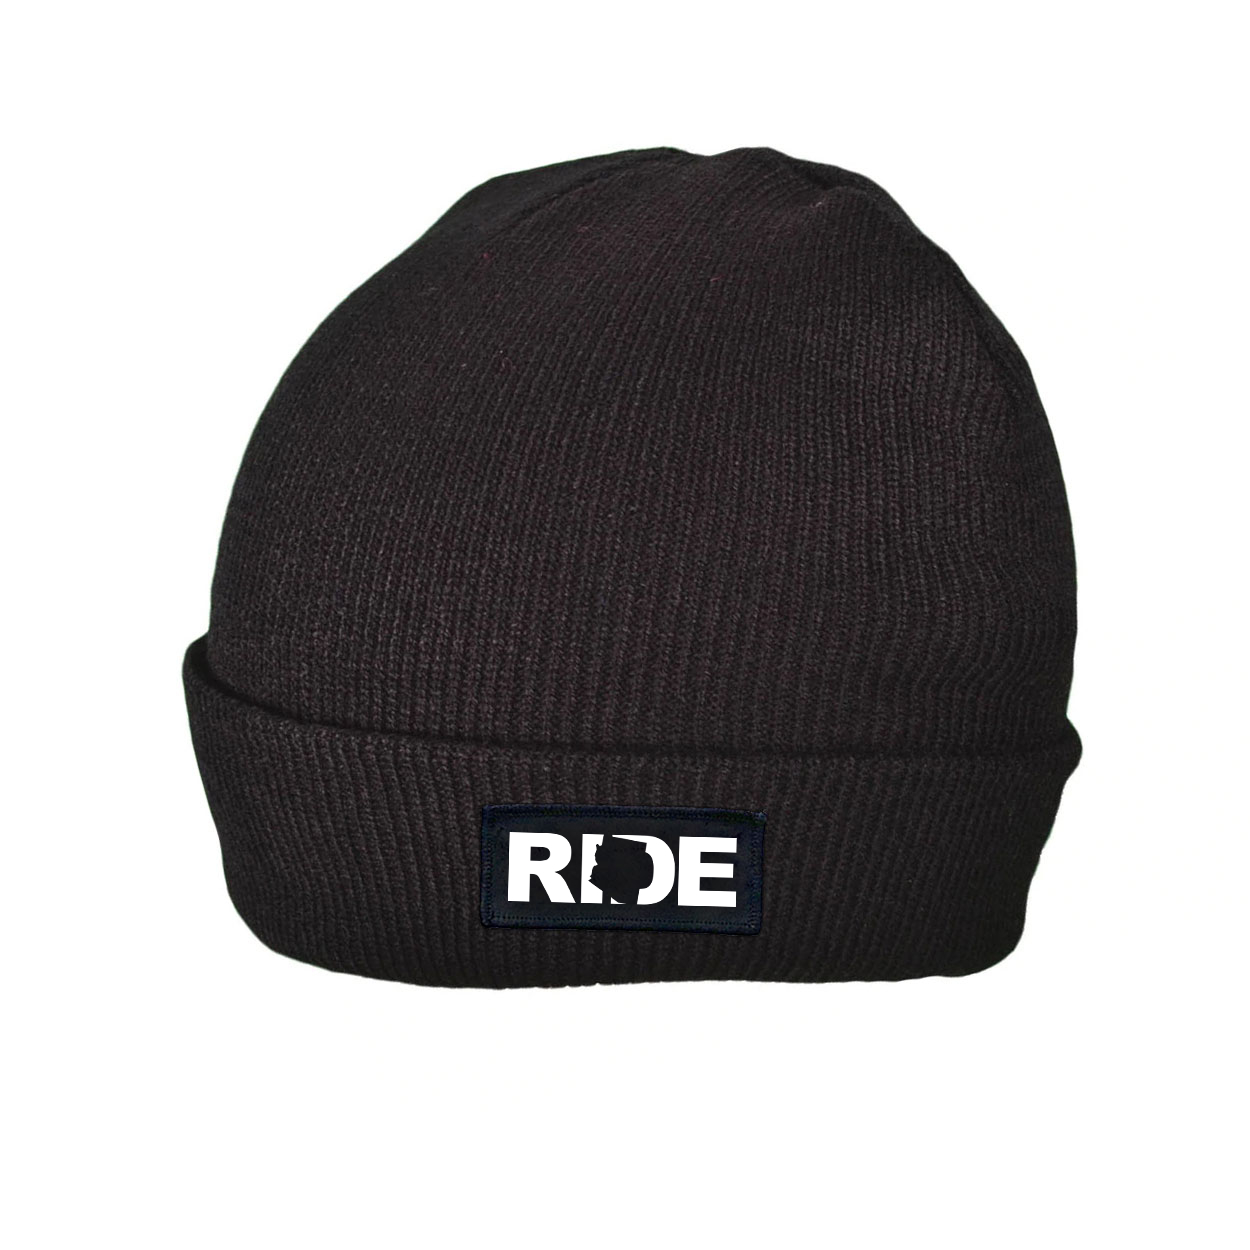 Ride Arizona Night Out Woven Patch Roll Up Skully Beanie Black (White Logo)